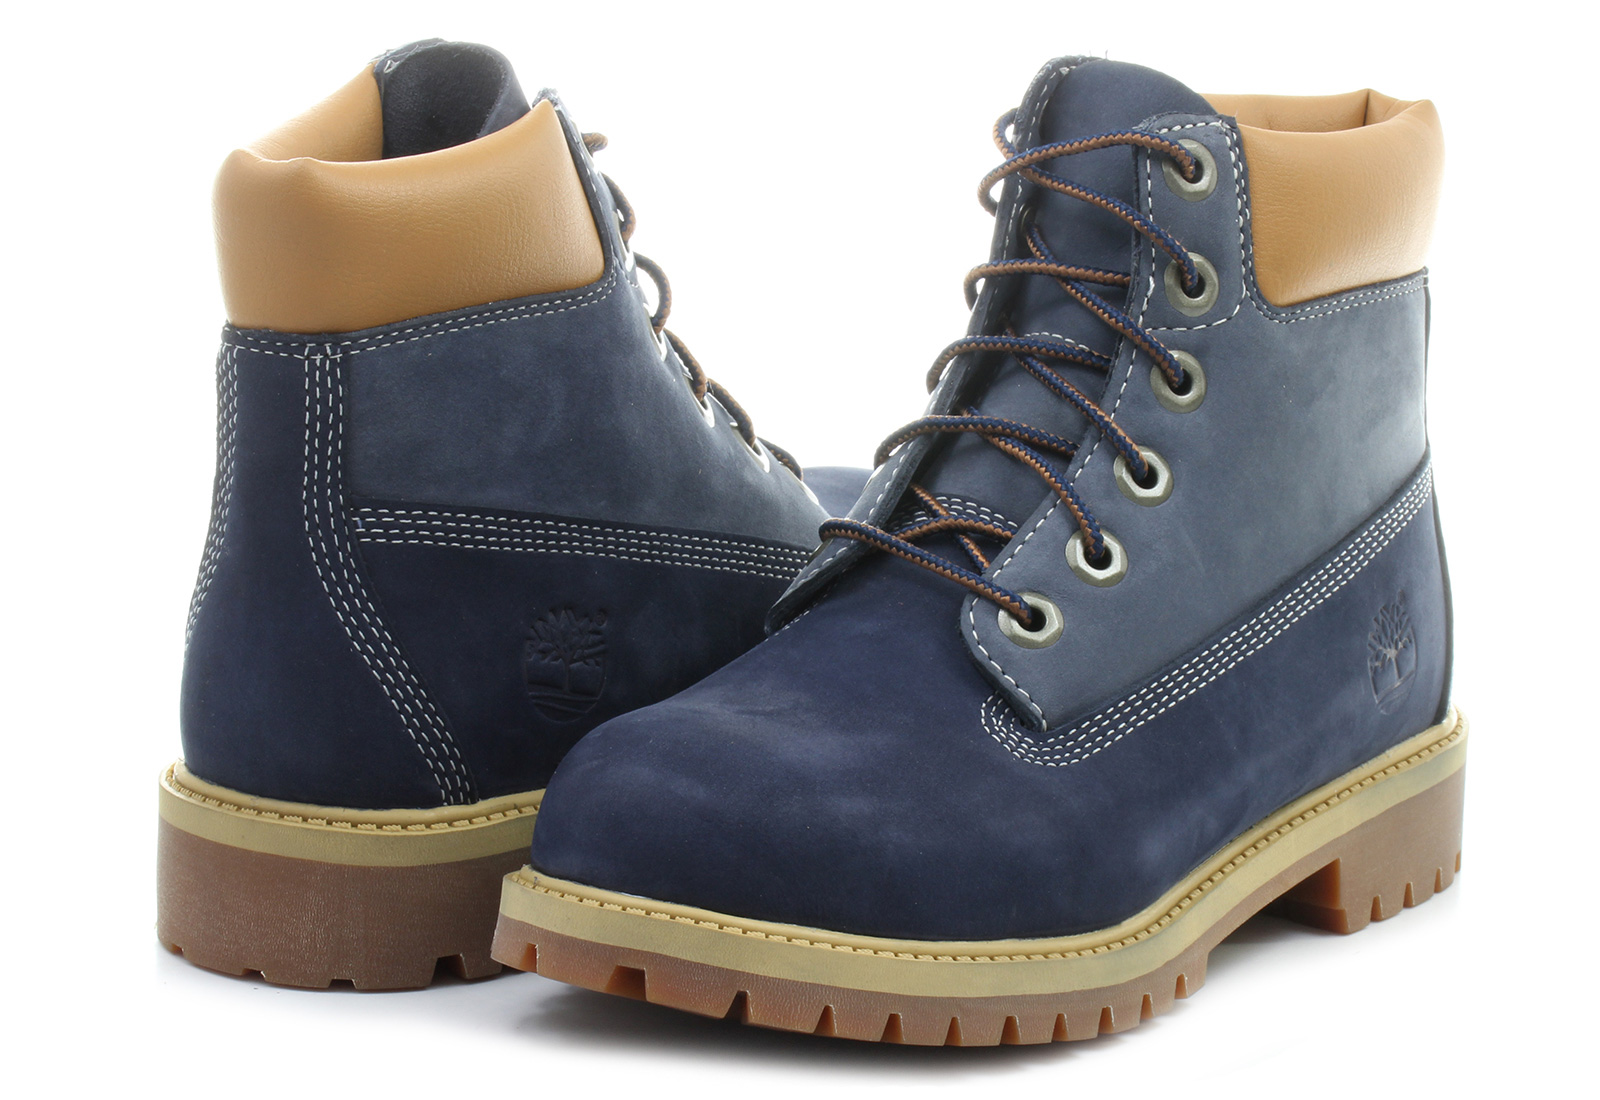 timberland boots 6 inch premium boot a14zd